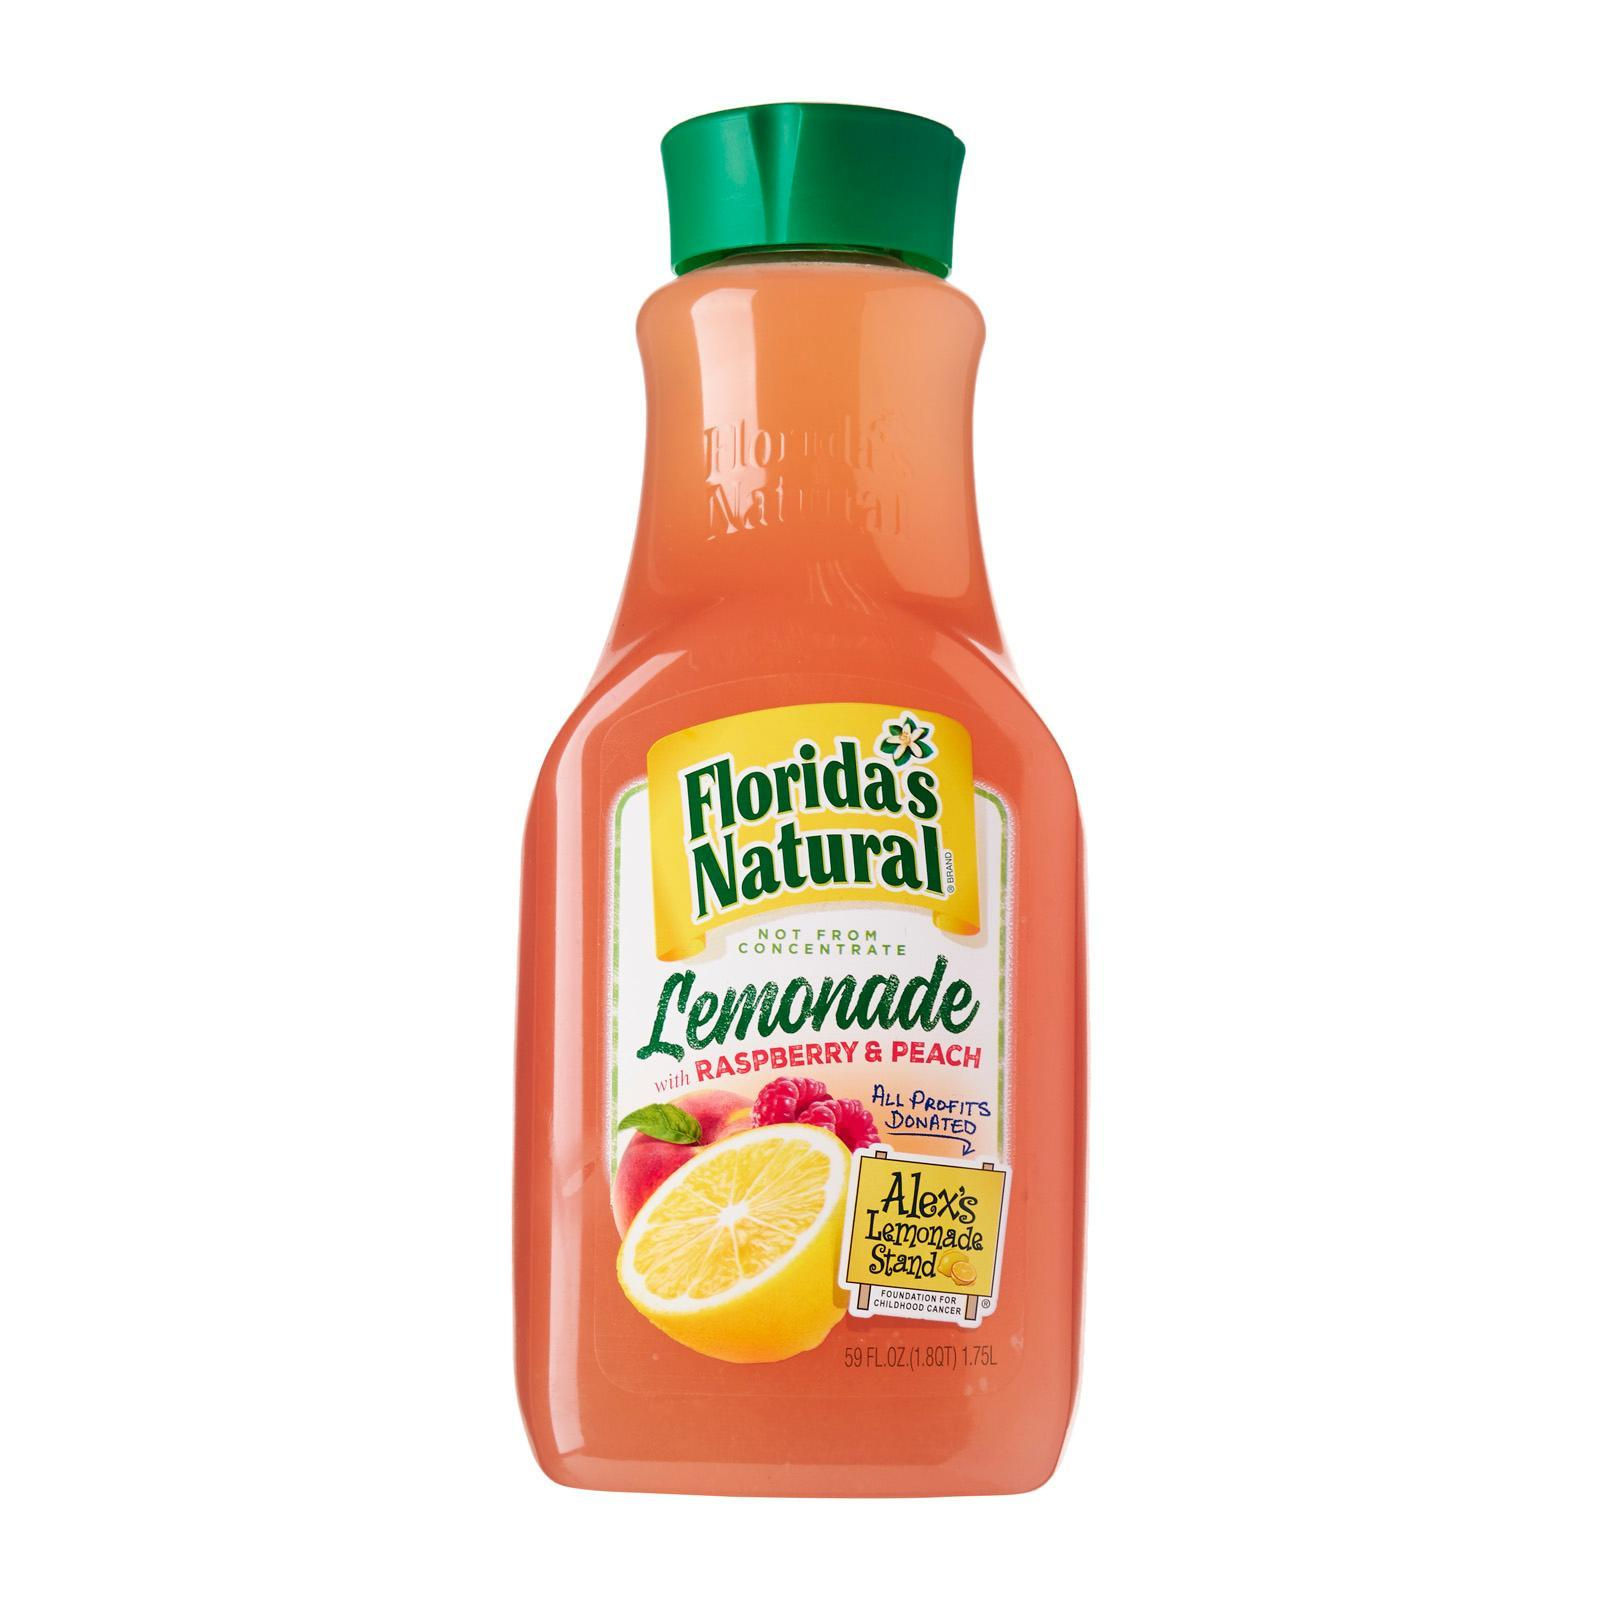 FLORIDA'S NATURAL Lemonade with Raspberry & Peach 1.75L